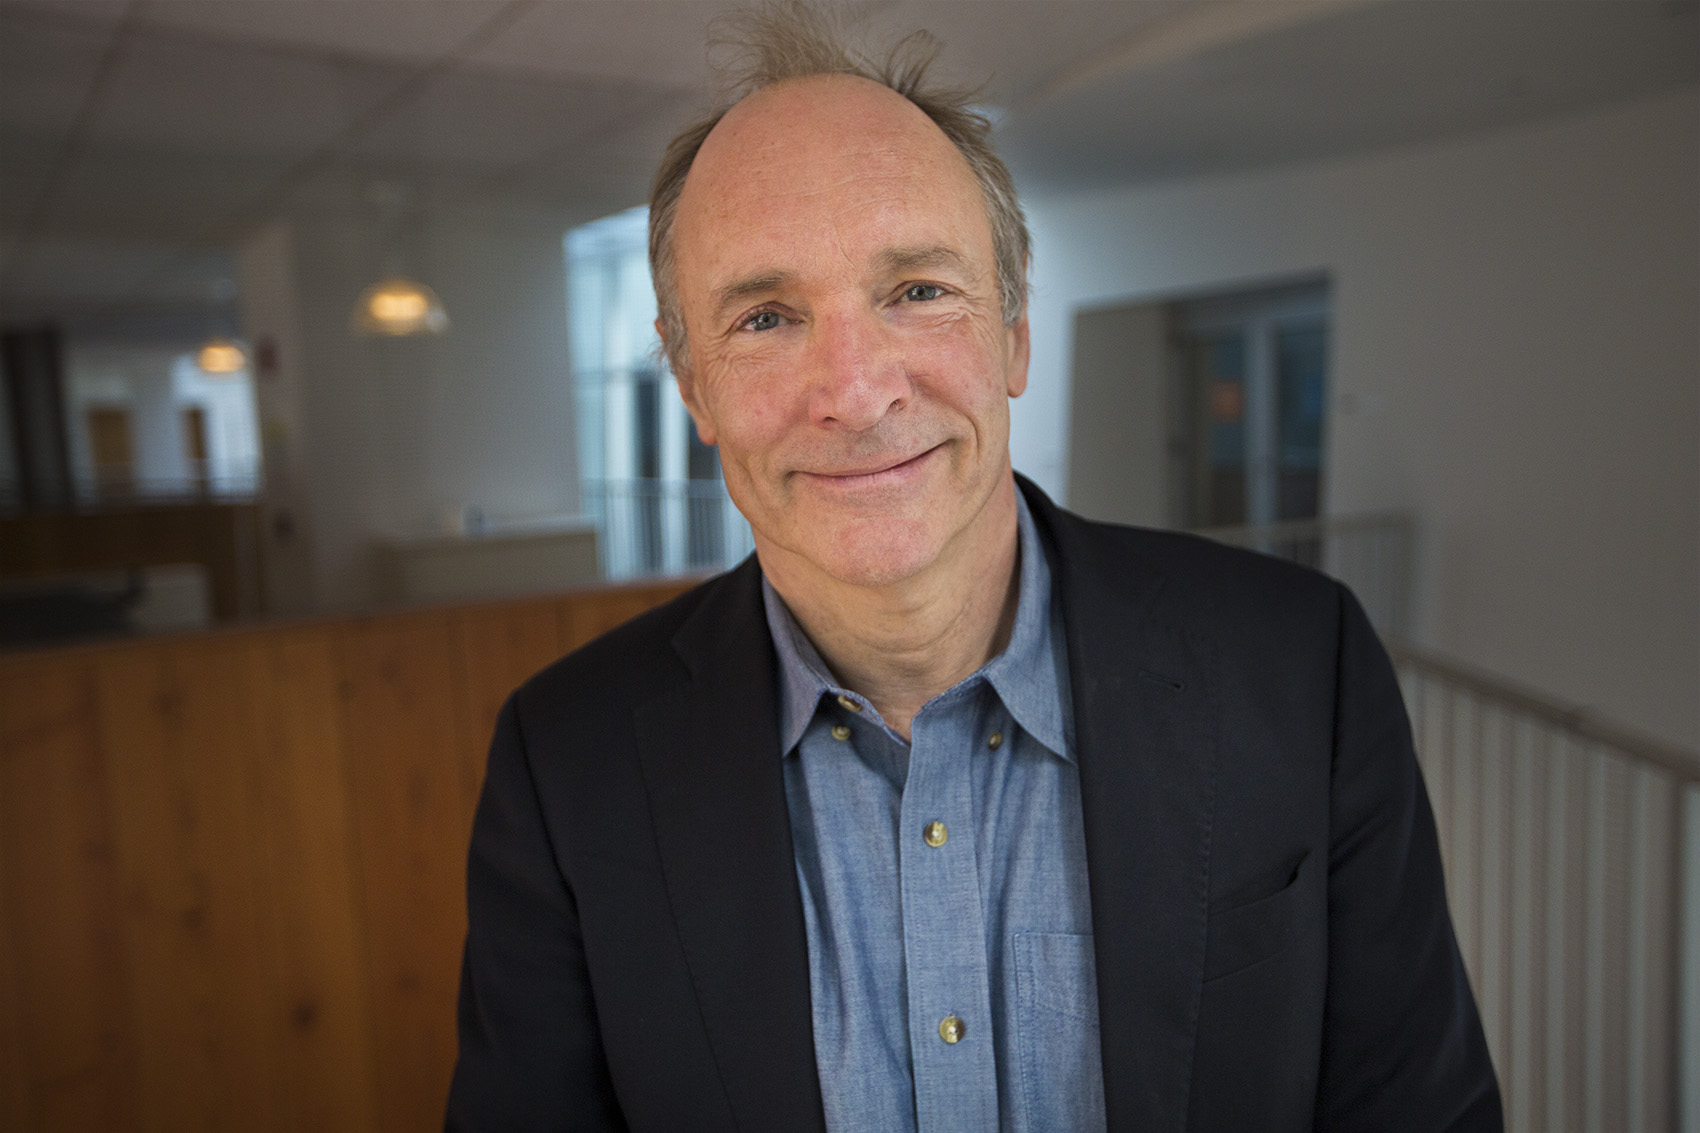 What The Founder Of The World Wide Web Thinks About The